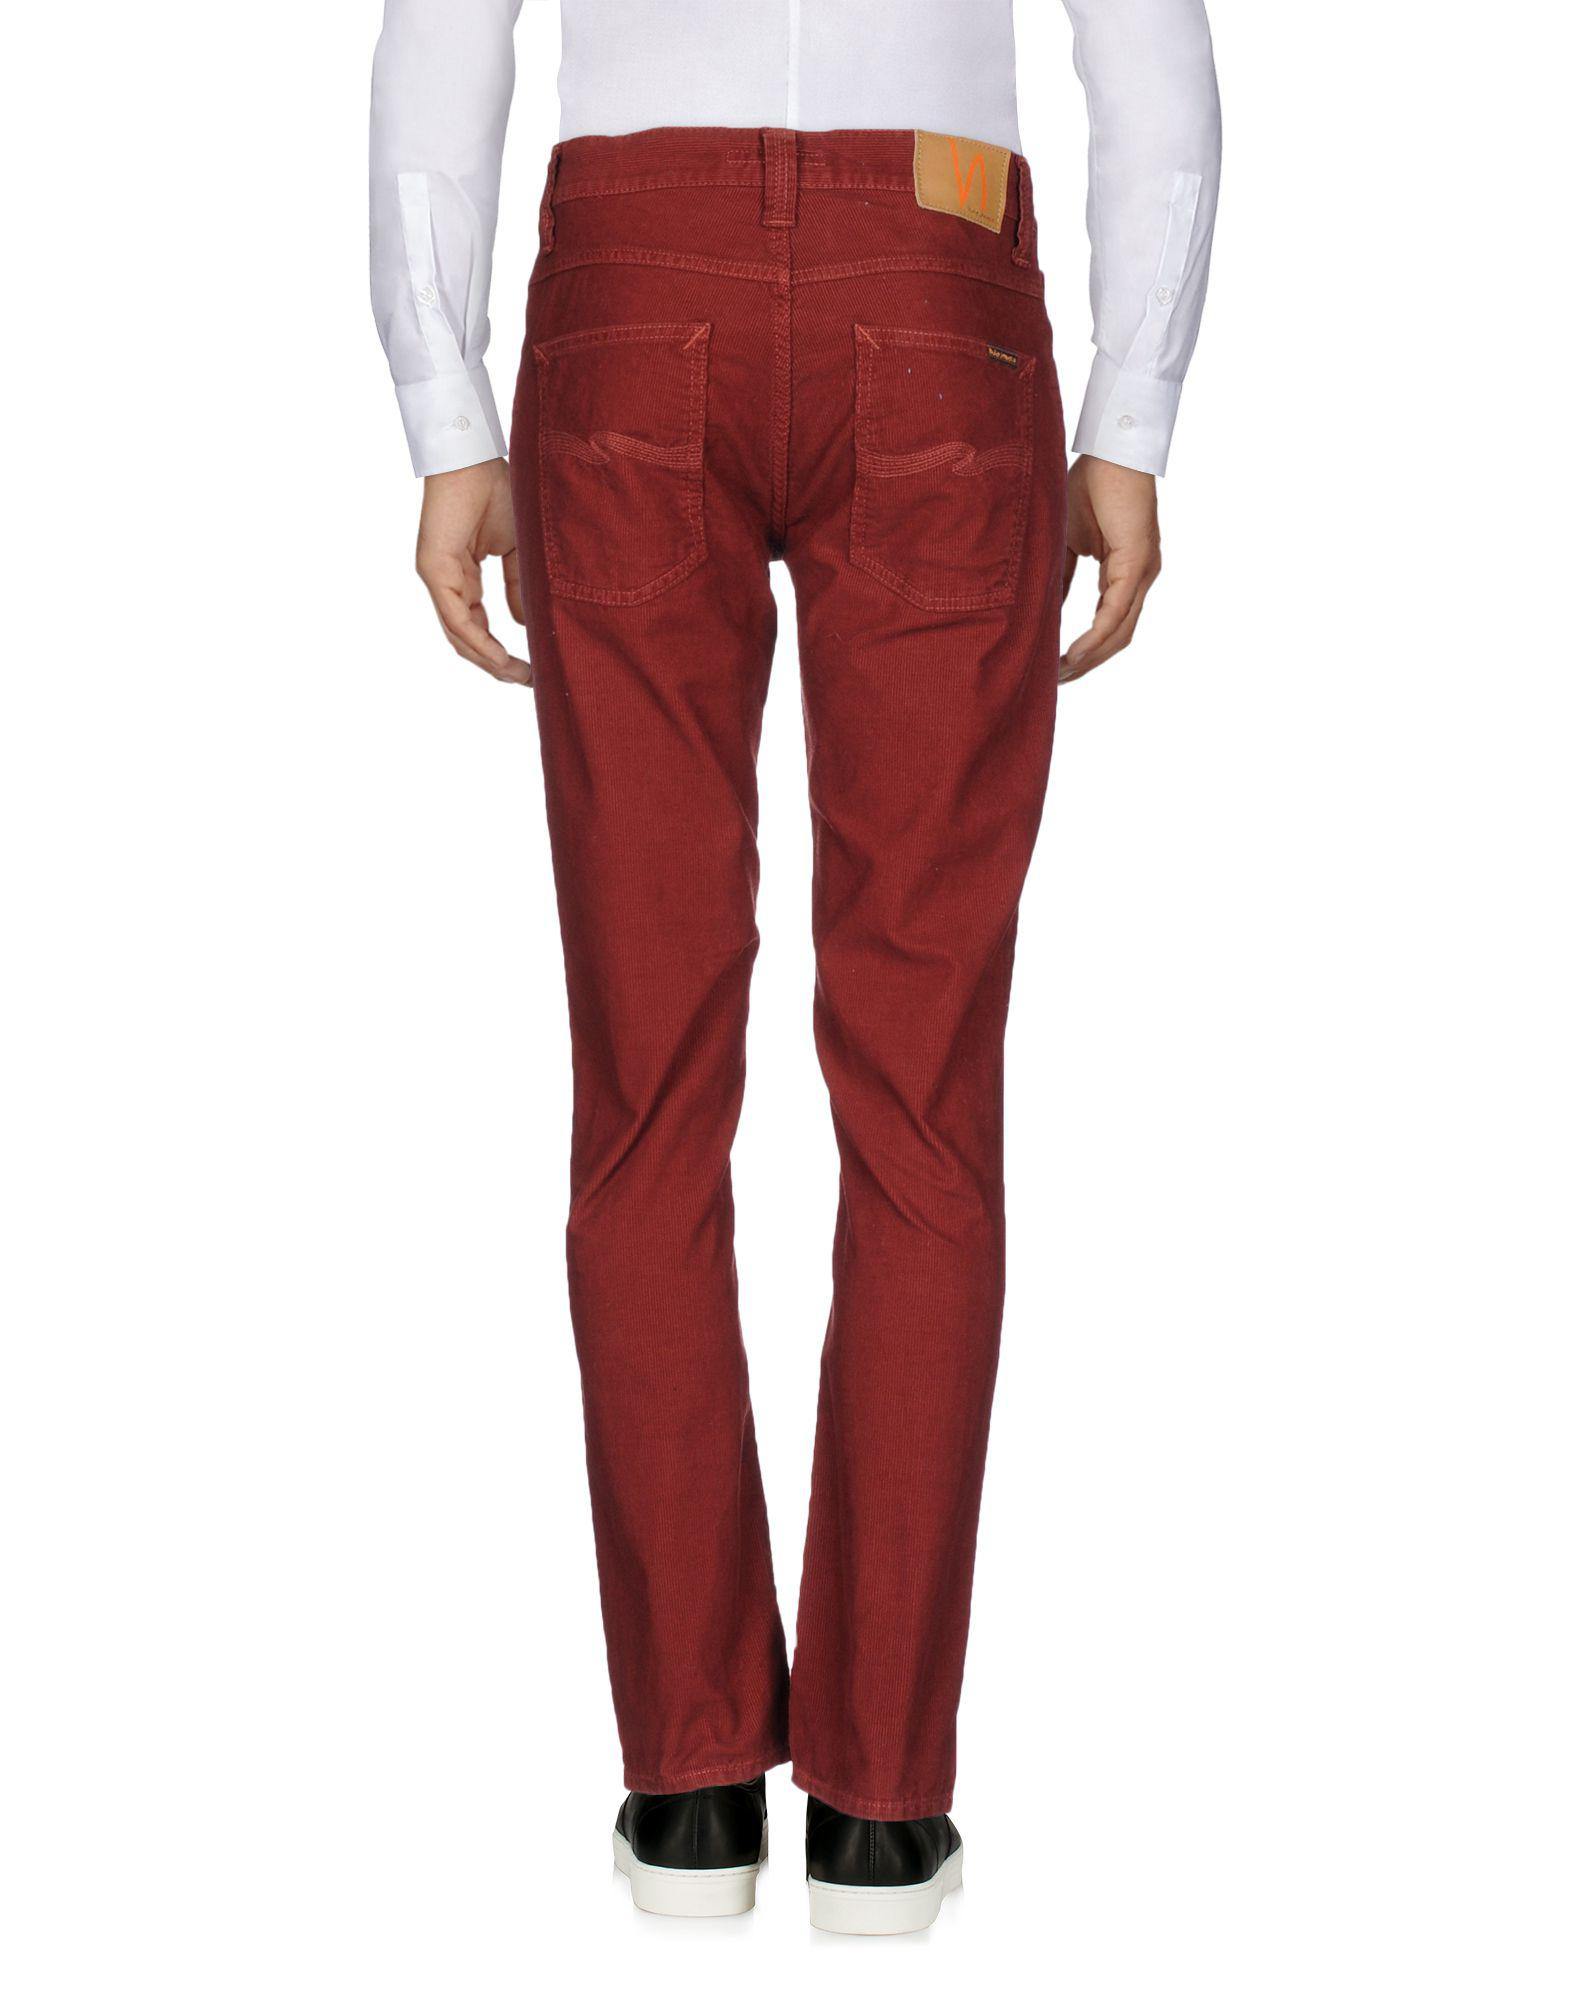 Nudie Jeans Corduroy Casual Trouser in Brick Red (Red) for Men